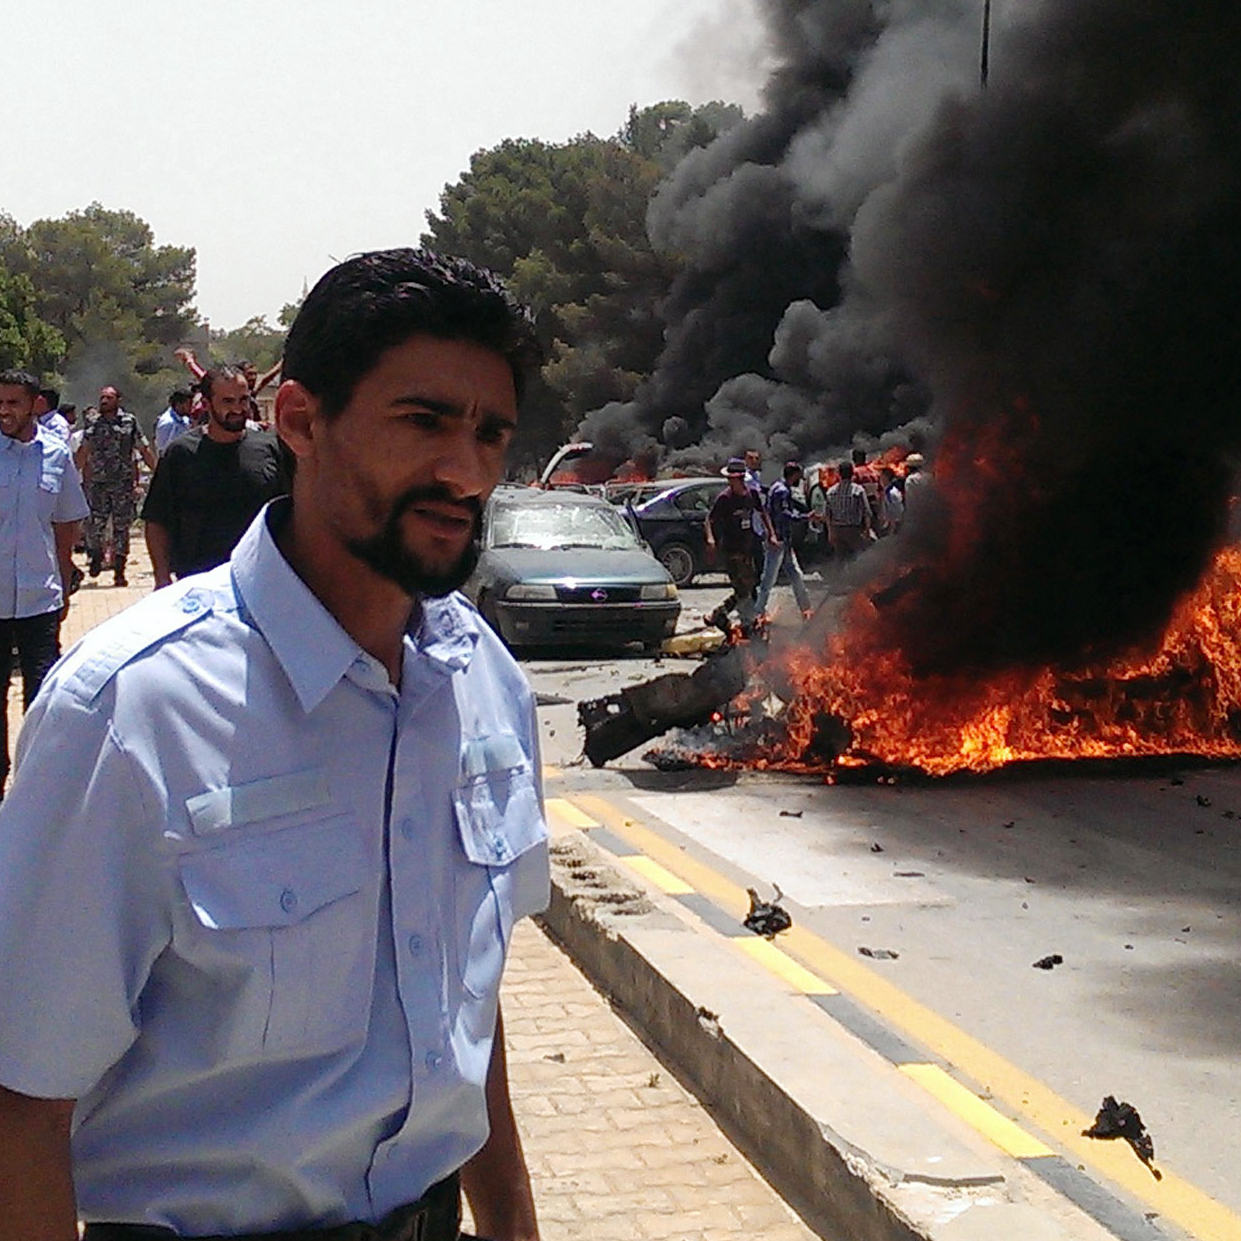 People stand near a burning car that exploded outside the parliament building, where members were drafting the new Libyan constitution, on Thursday. There were no casualties, but the blast was part of the ongoing violence in the country.